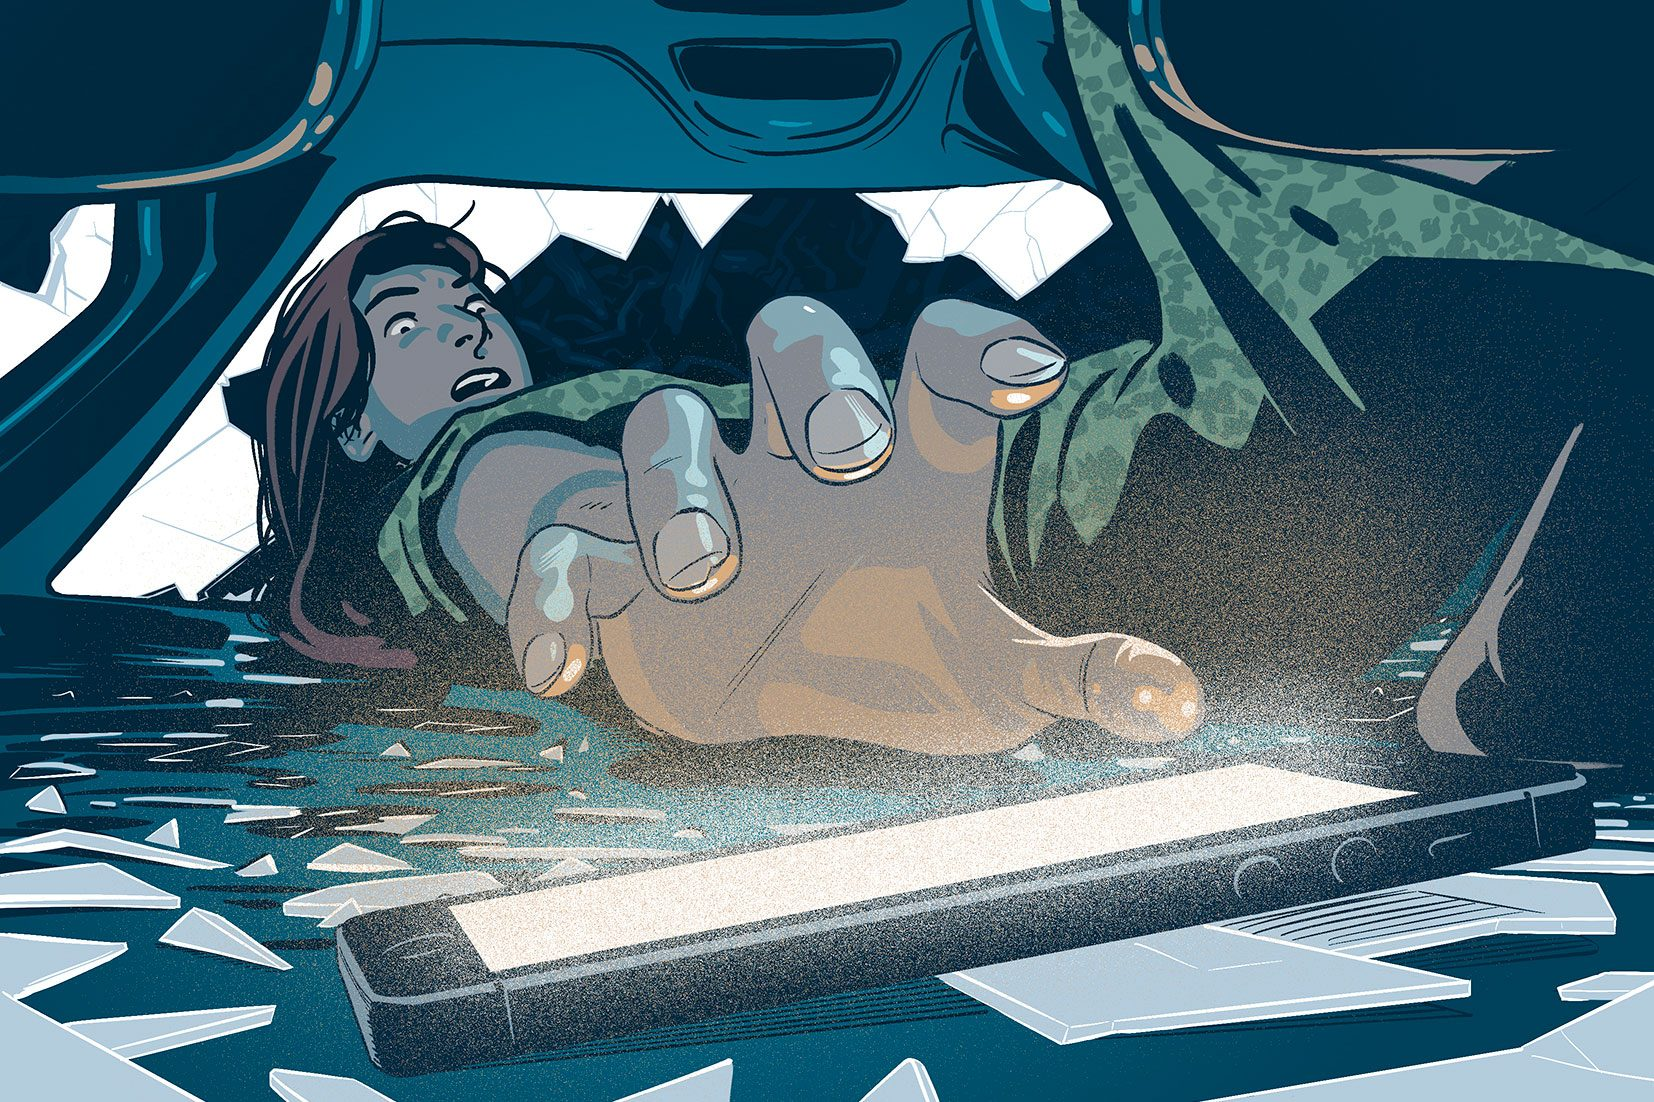 illustration of woman reaching for her ringining phone in the car wreck